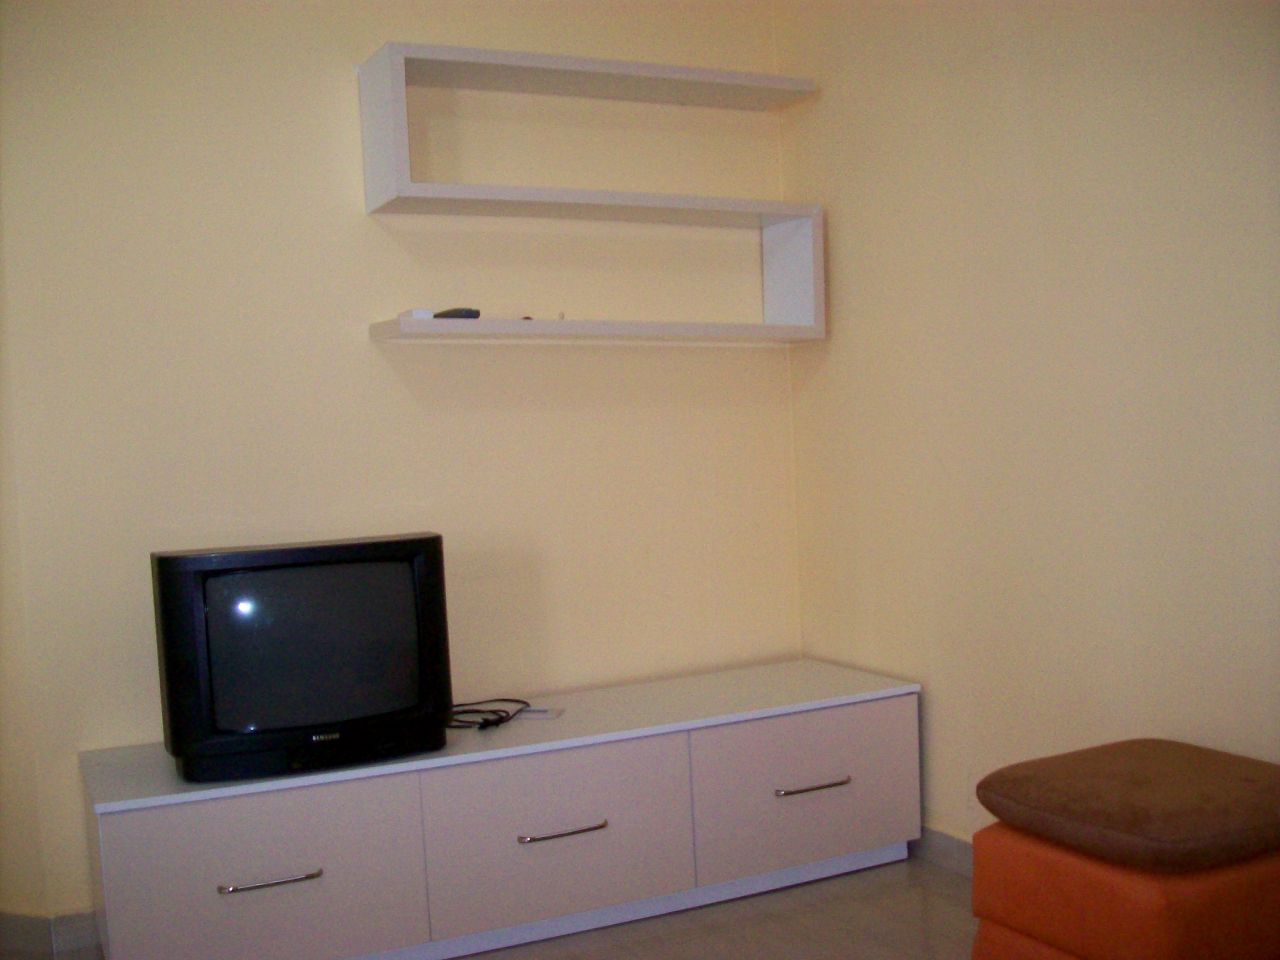 Holiday apartment for rent in Vlora City, with one bedroom.